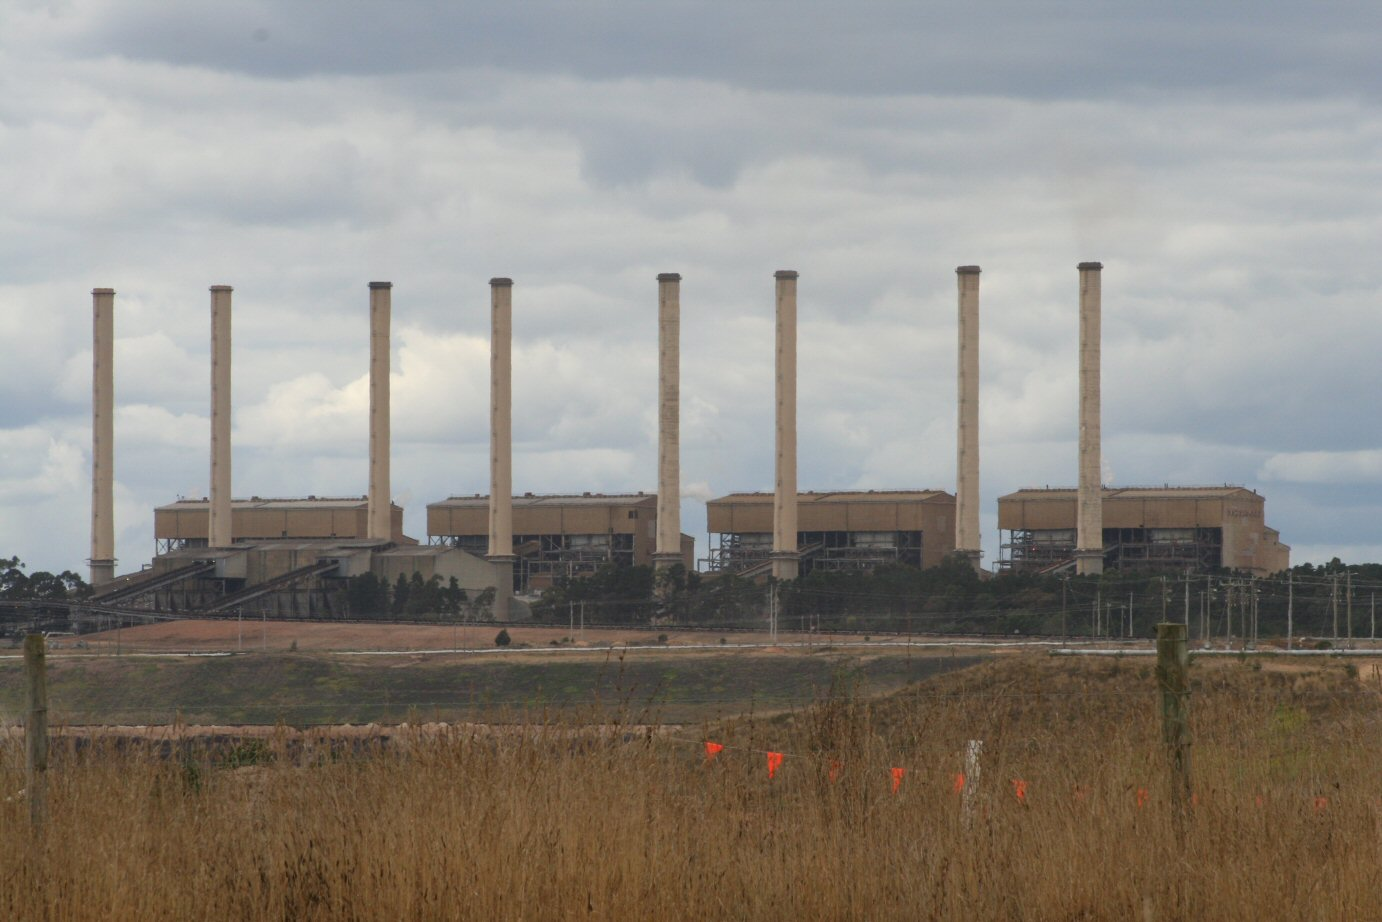 http://upload.wikimedia.org/wikipedia/commons/e/e7/Hazelwood_Power_Station.jpg